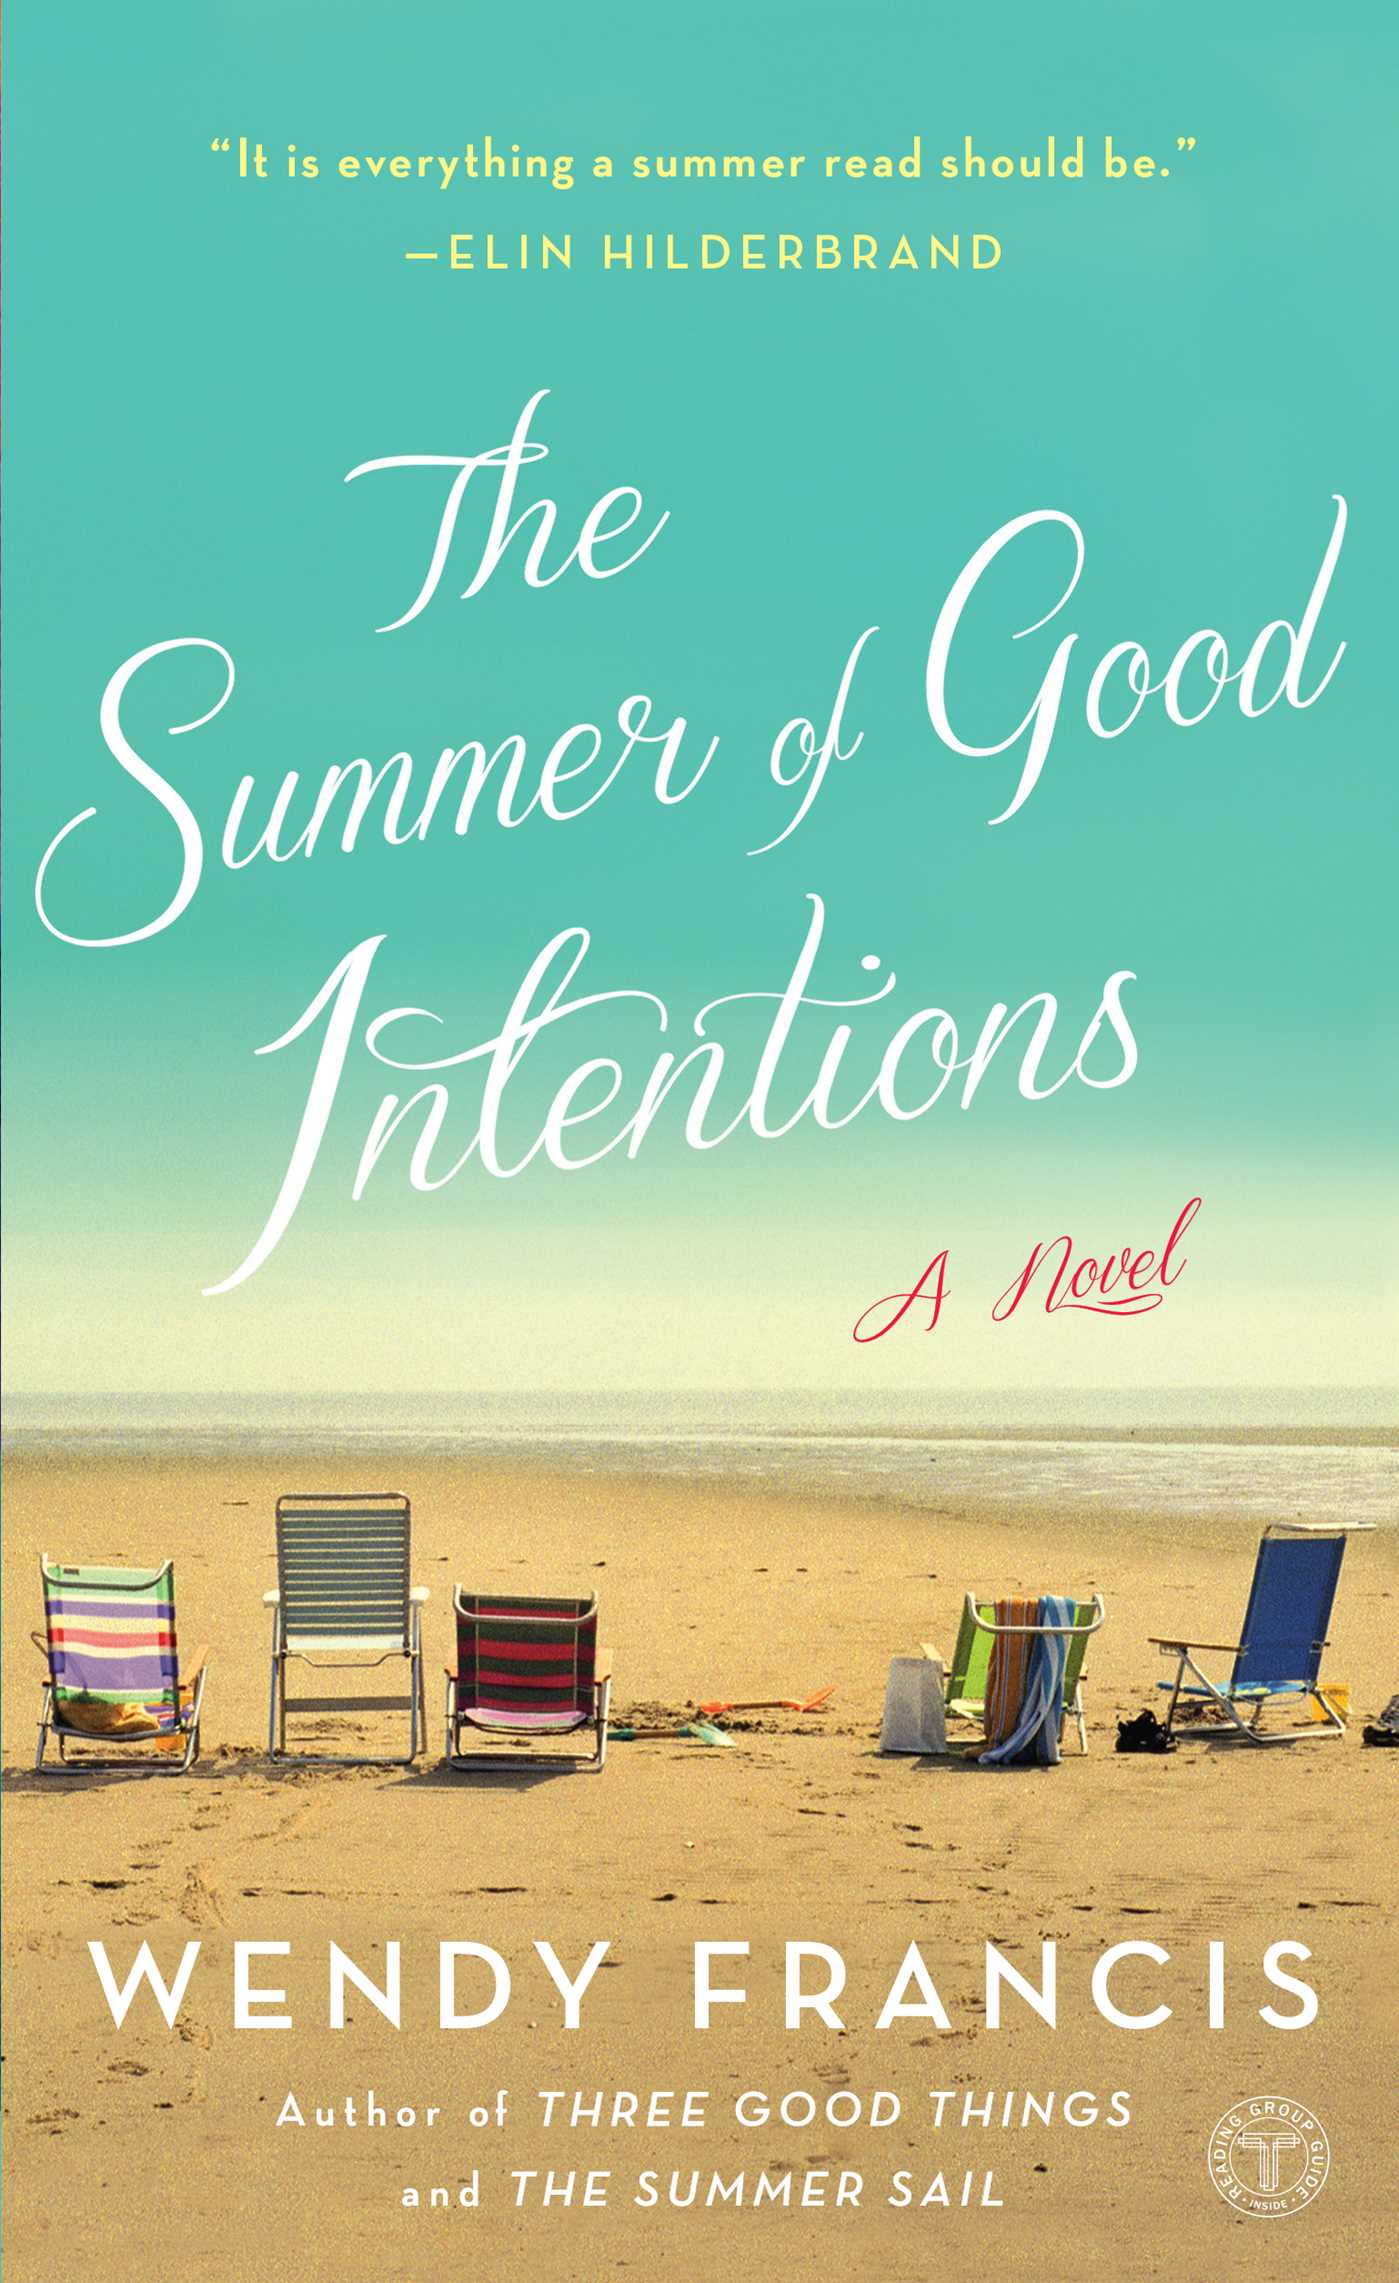 Do you read in the summer?